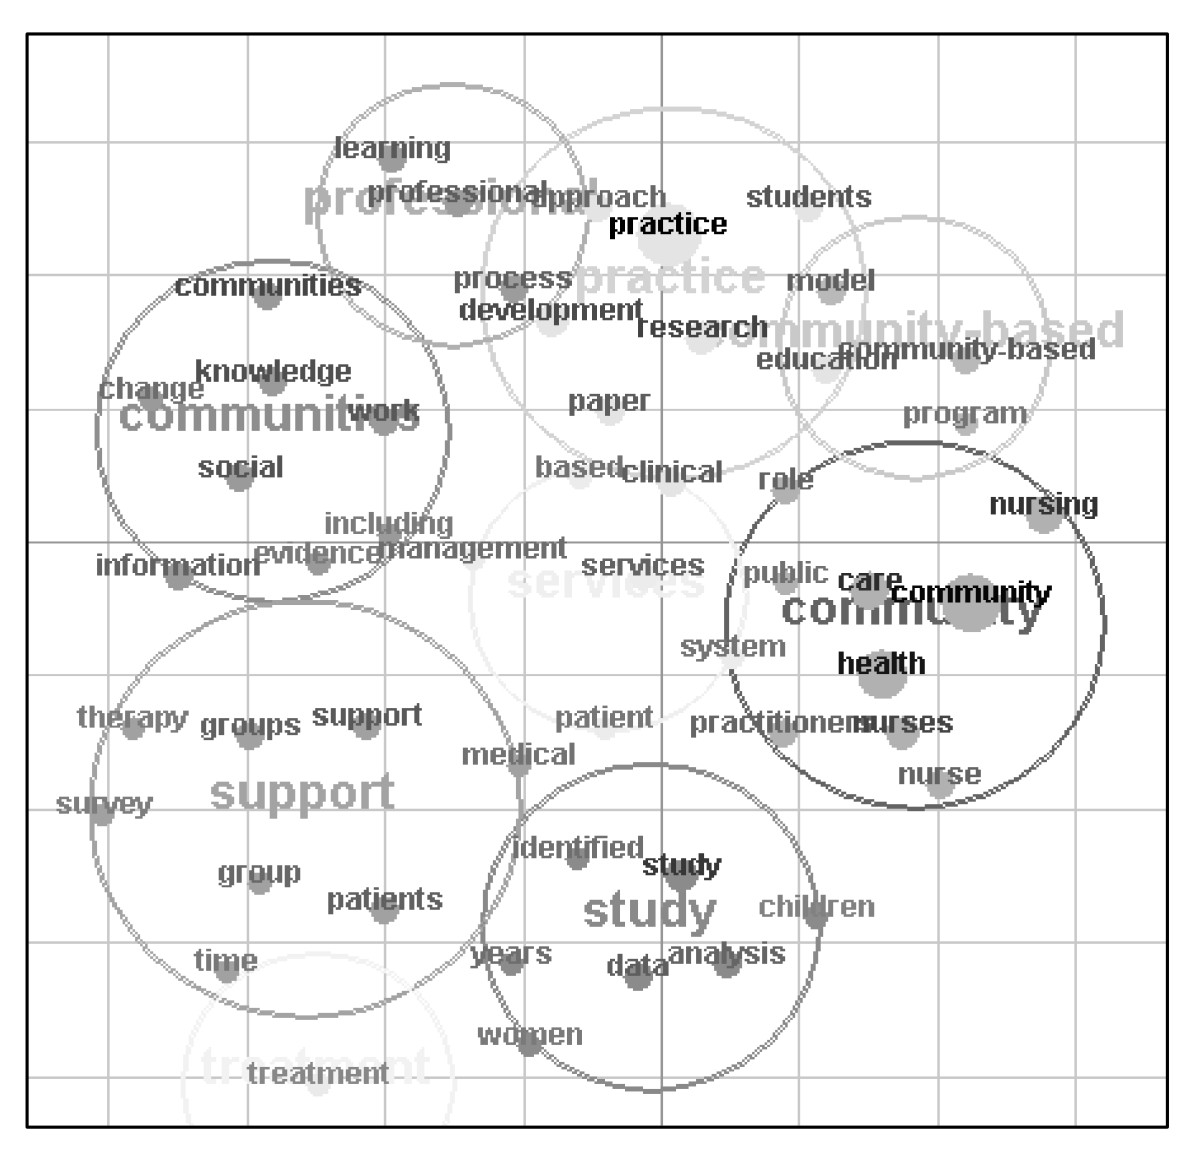 http://static-content.springer.com/image/art%3A10.1186%2F1472-6963-9-162/MediaObjects/12913_2009_Article_1033_Fig1_HTML.jpg